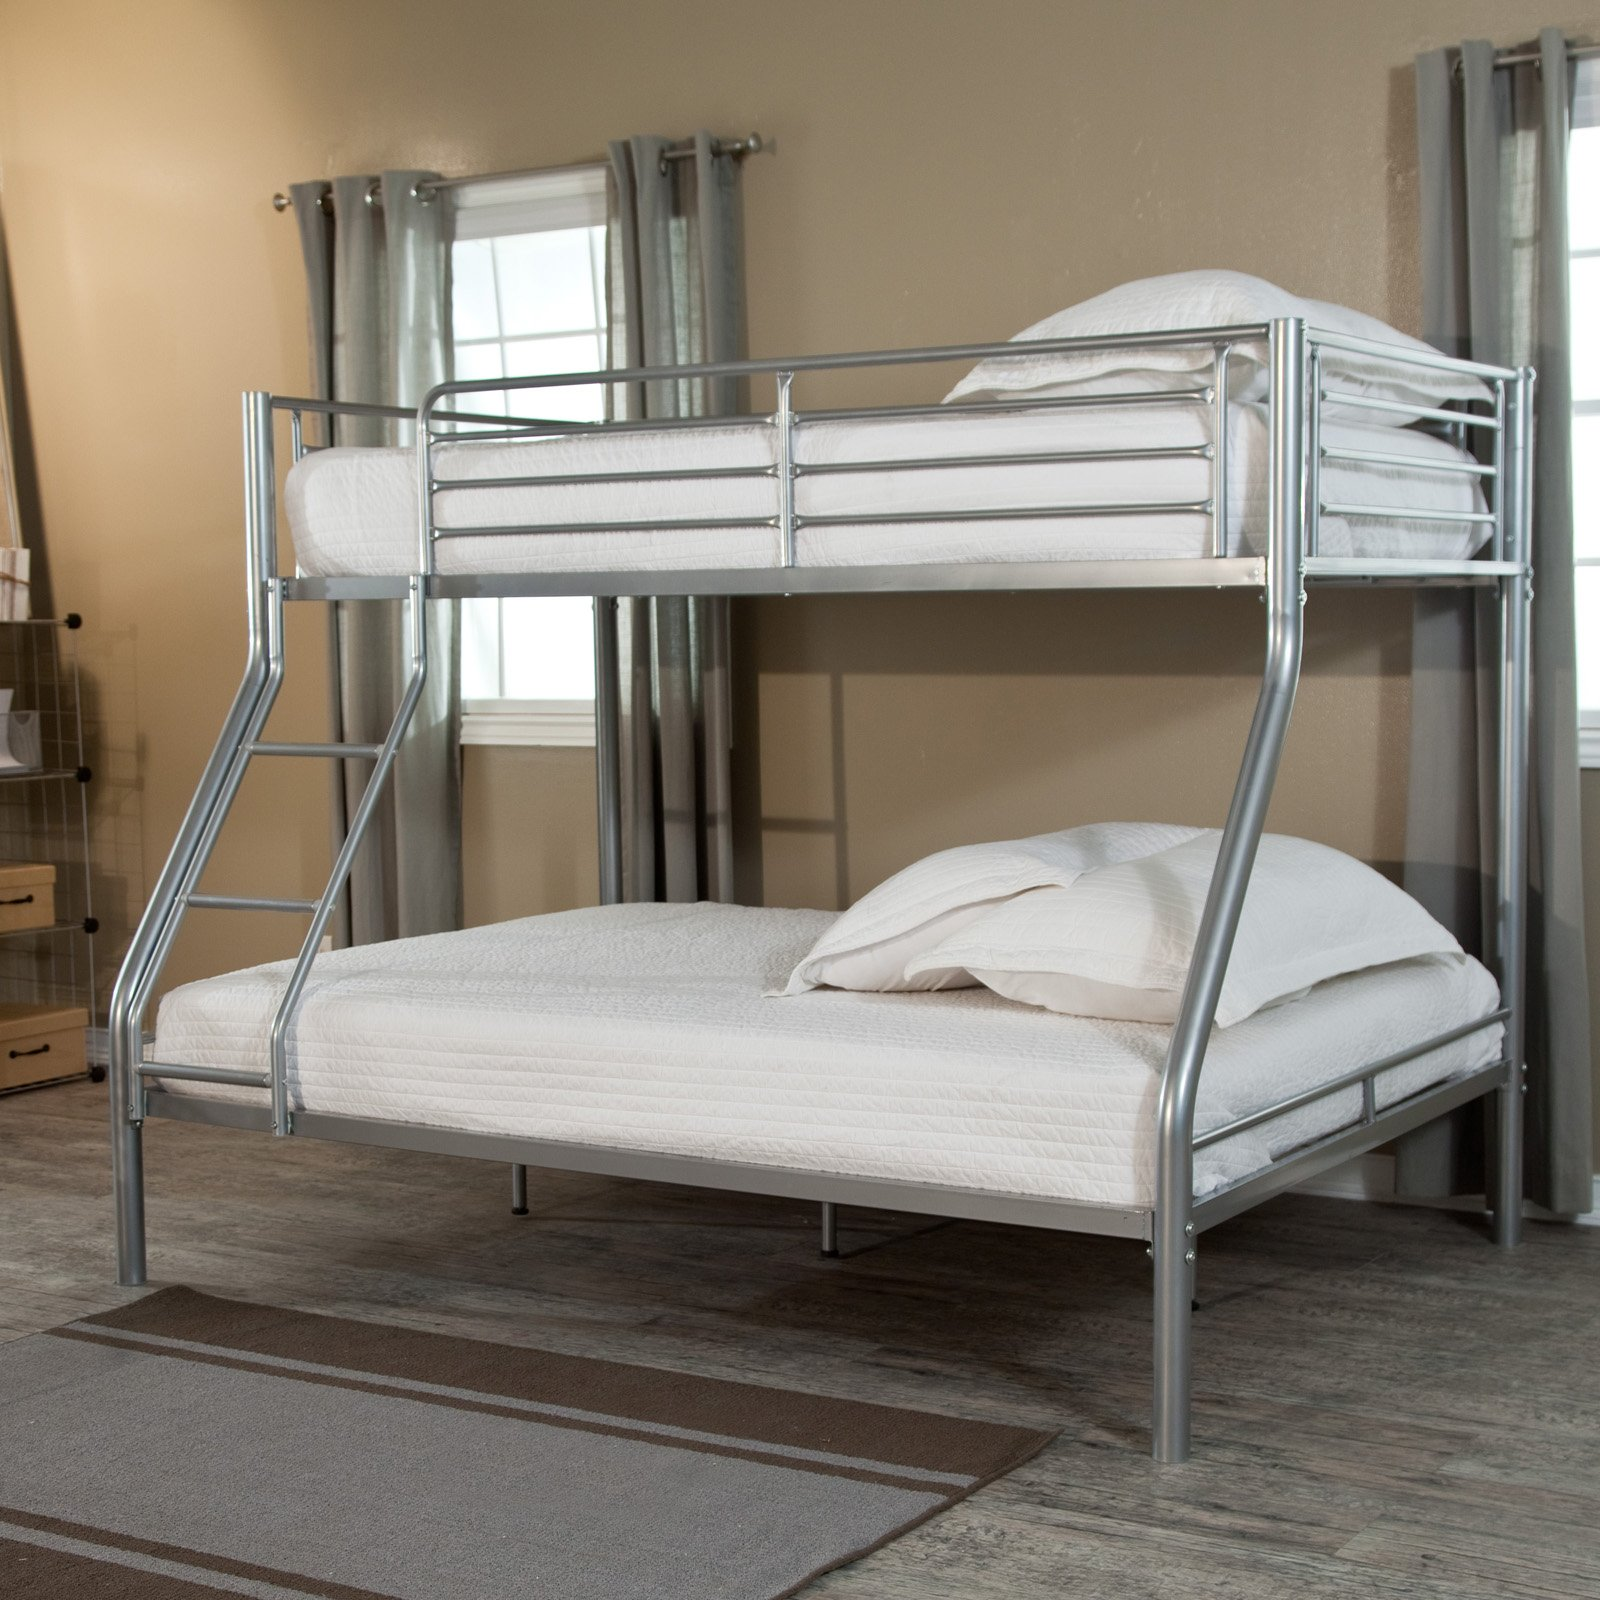 affordable modern twin beds for kids photo - 6